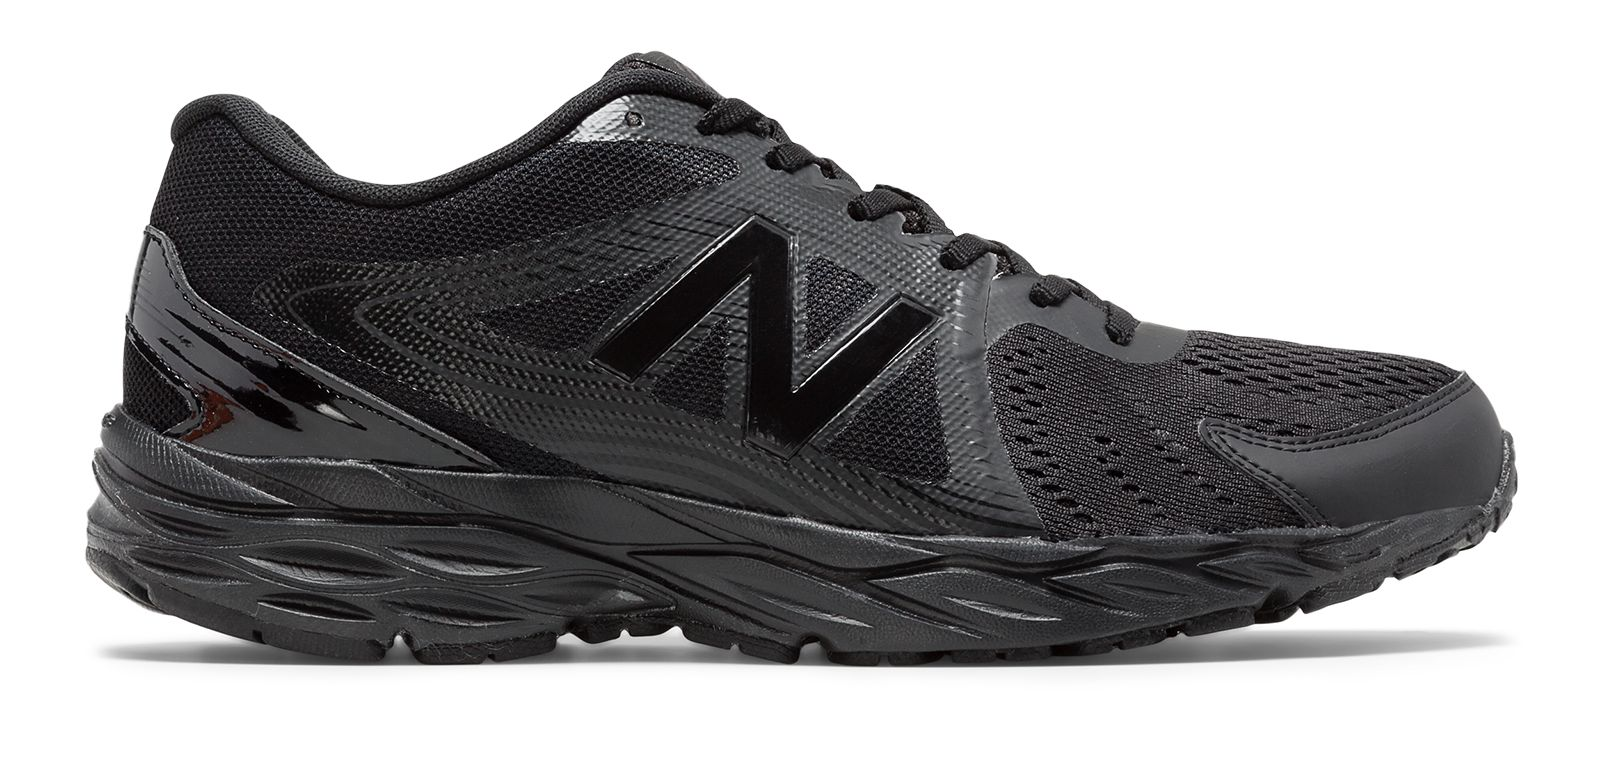 Discount Men\u0027s New Balance Running Shoes | Cheap Running Shoes for Men |  Joe\u0027s New Balance Outlet